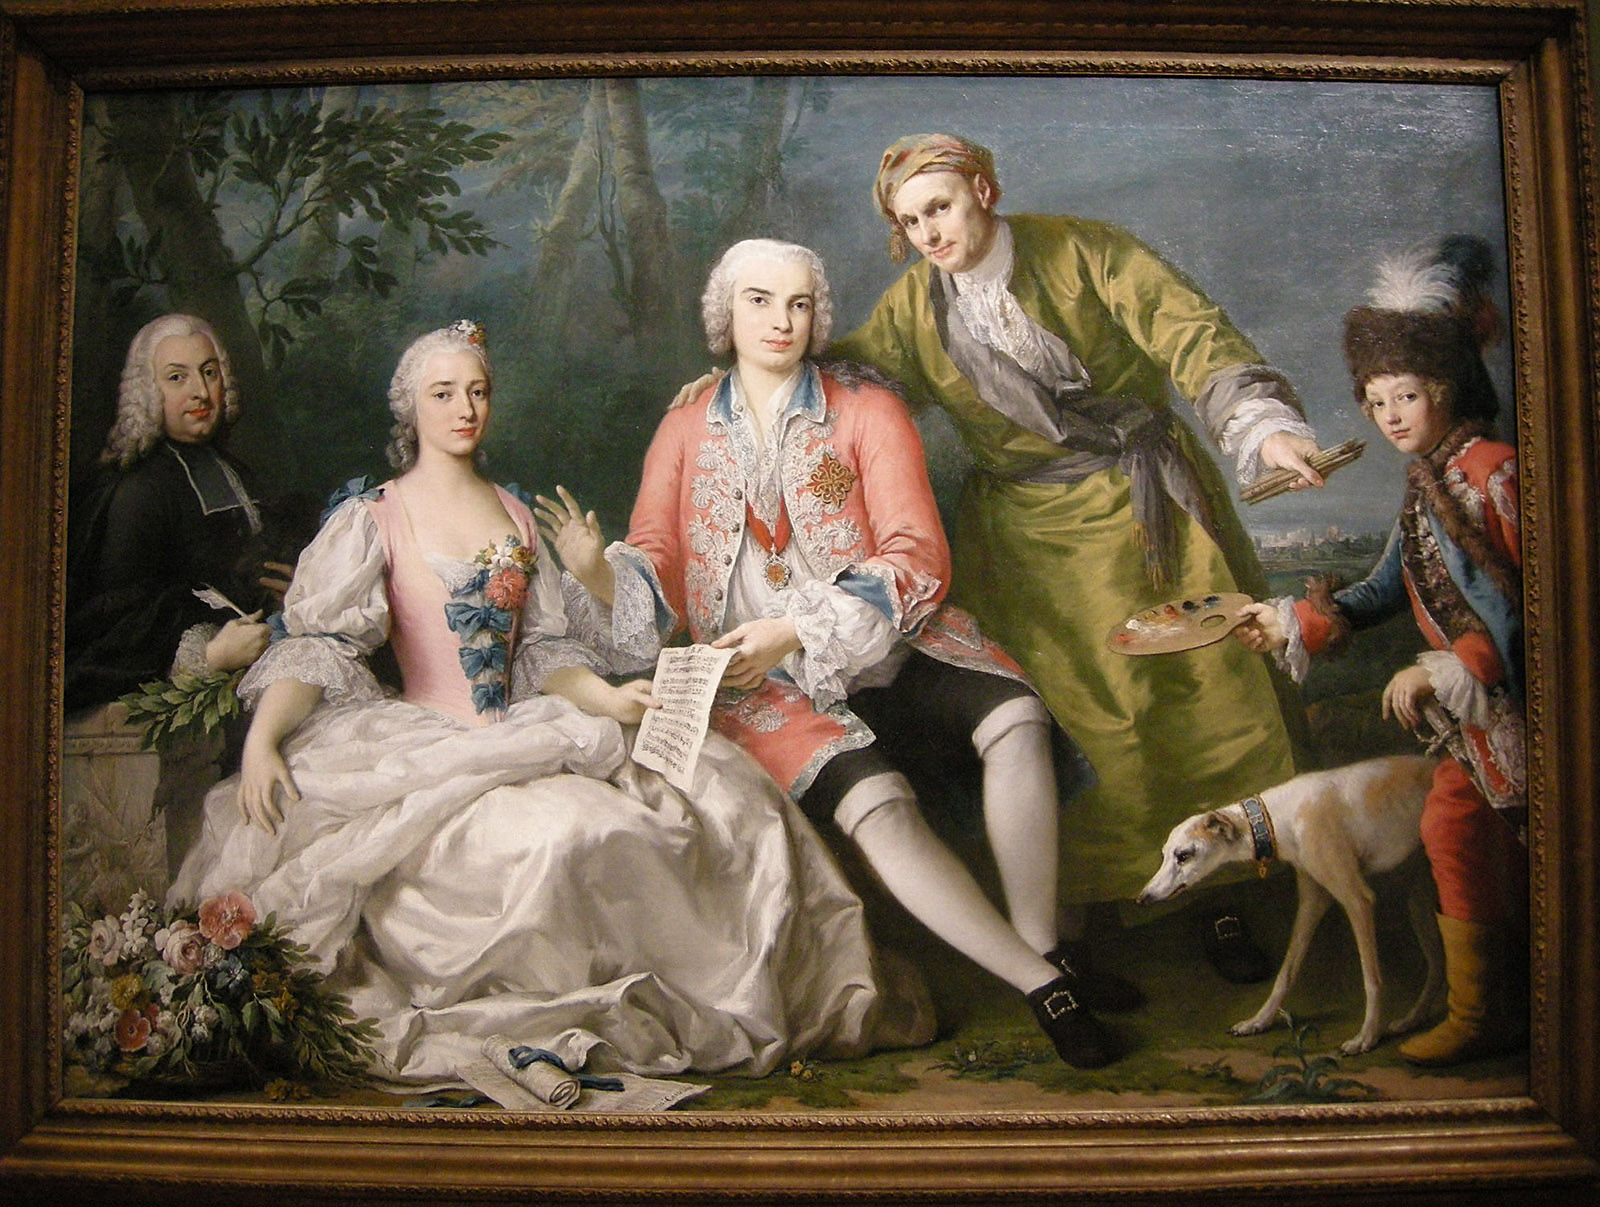 Jacopo Amigoni. El cantante Farinelli con amigos. 1750-52. National Gallery of Victoria. Melbourne.